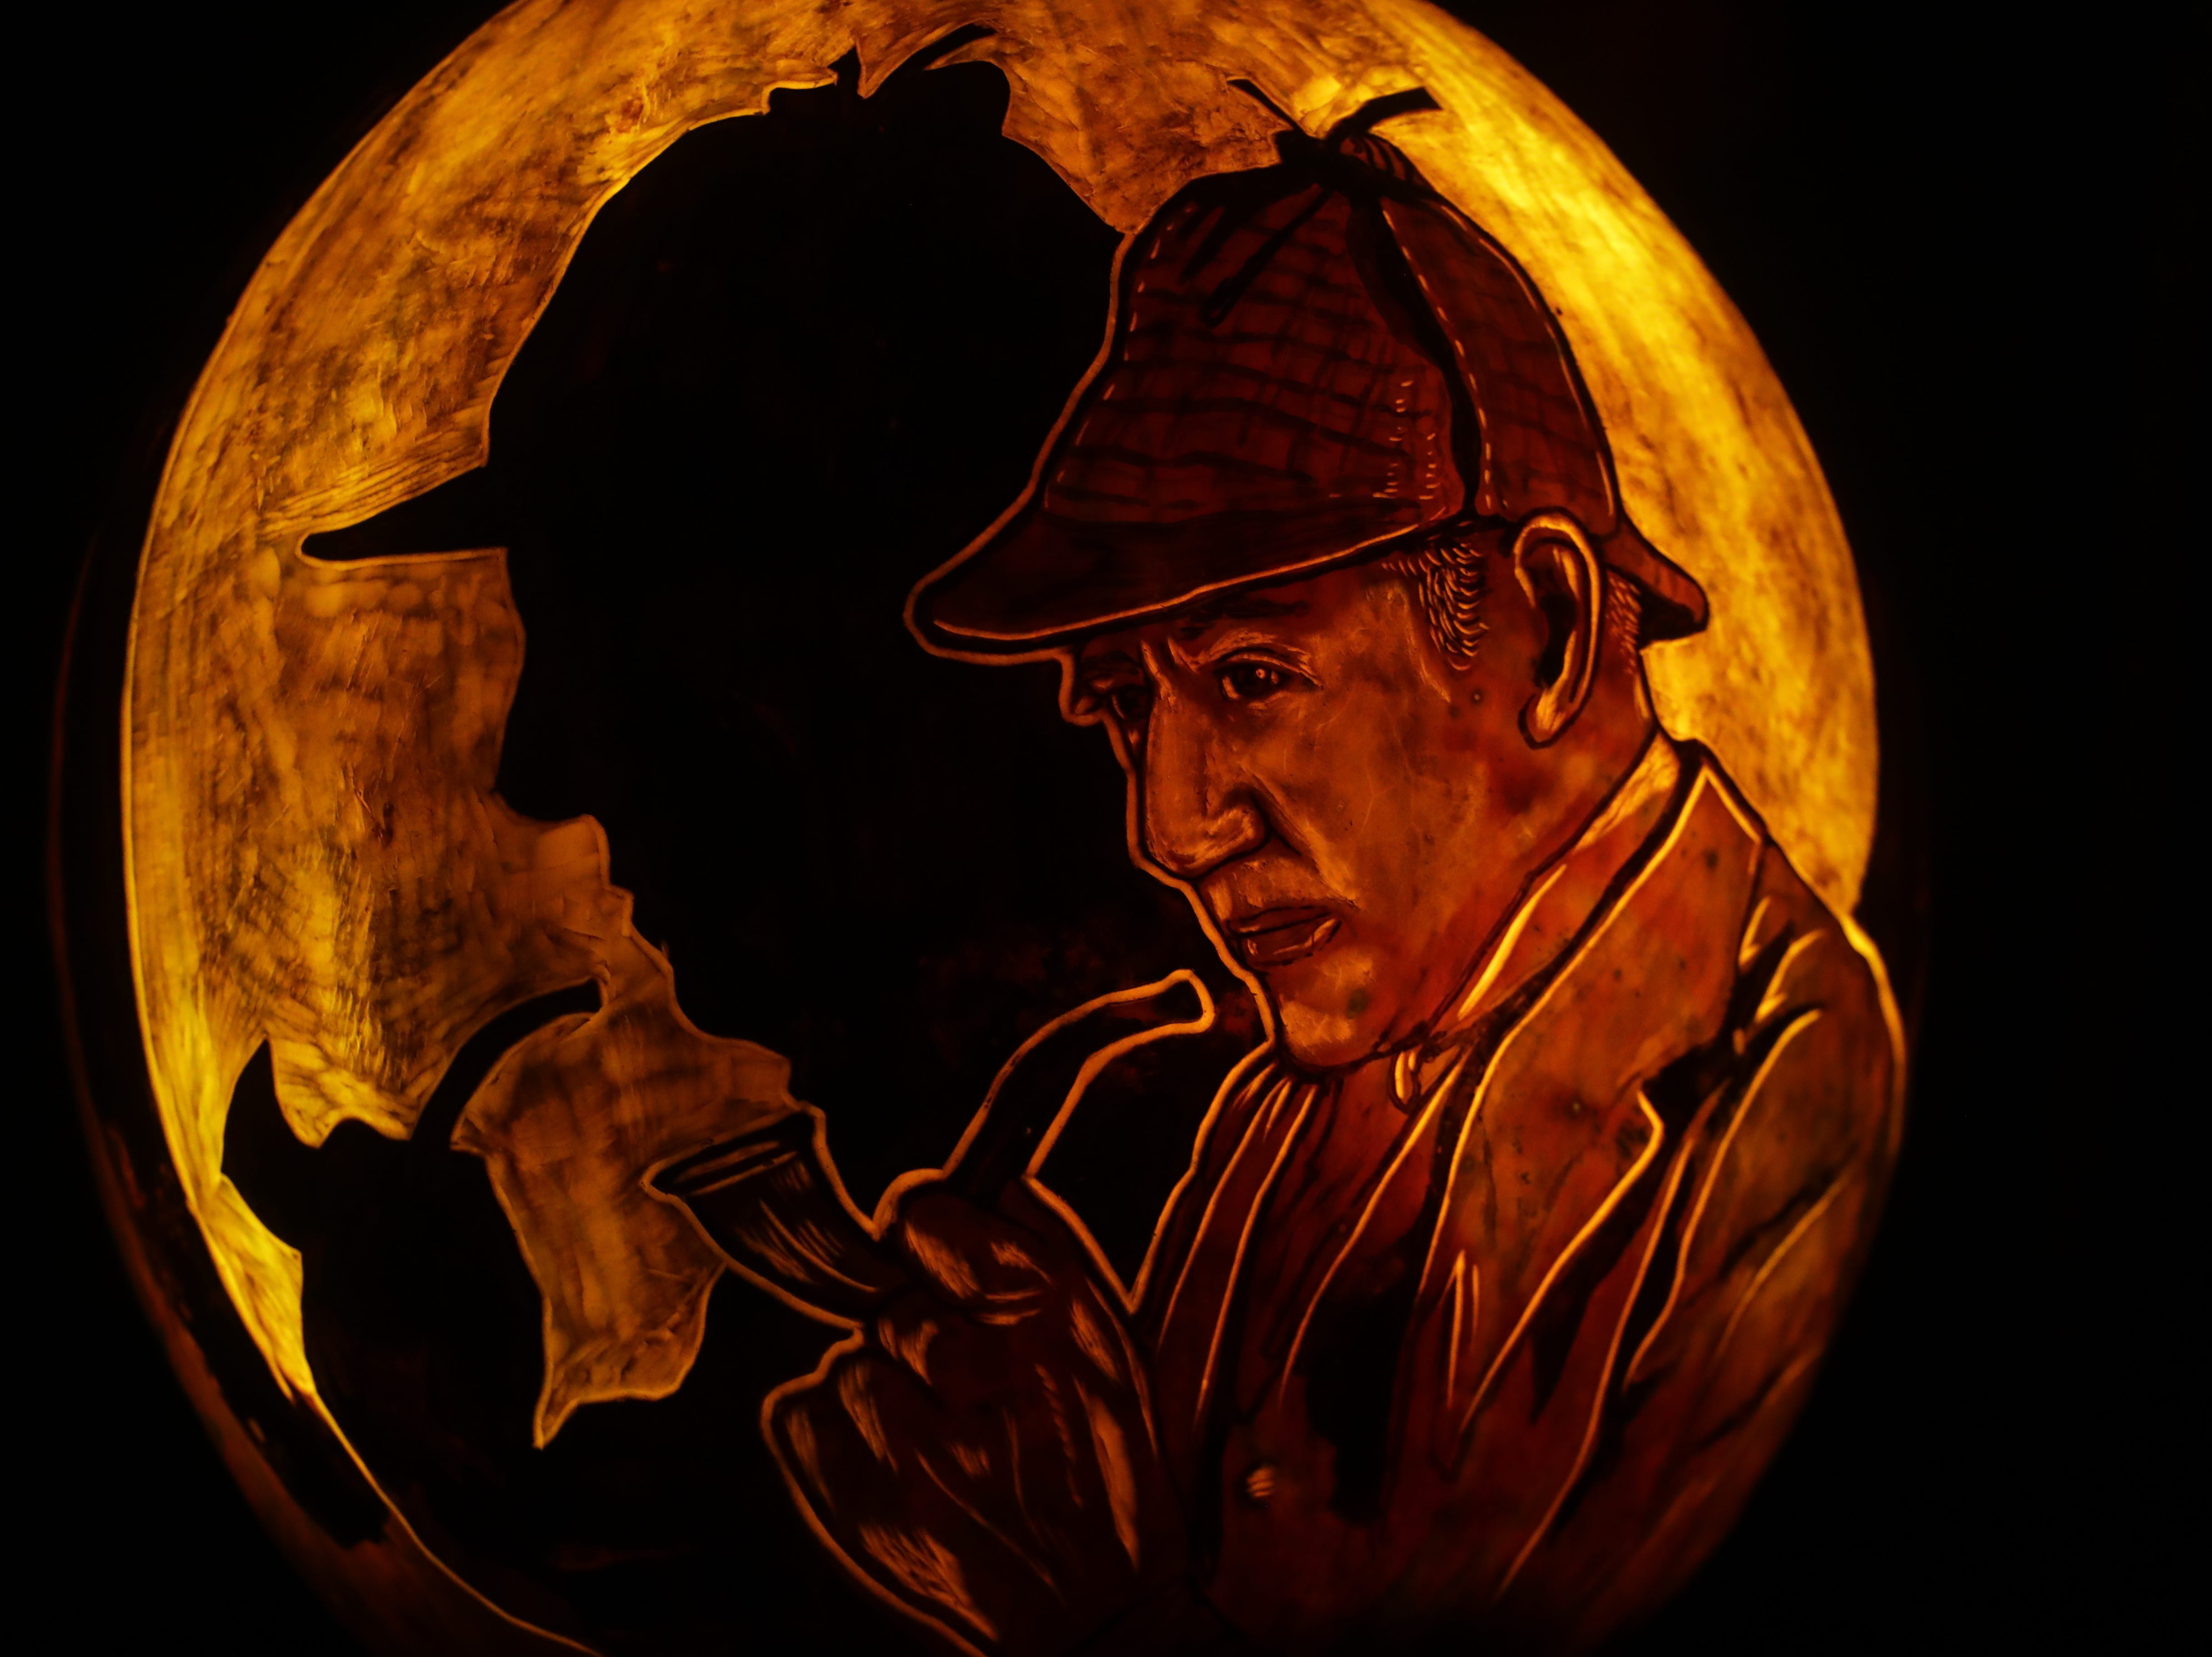 Sherlock Holmes appears on a pumpkin at this year's Jack O' Lantern Spectacular. Oct. 9, 2018